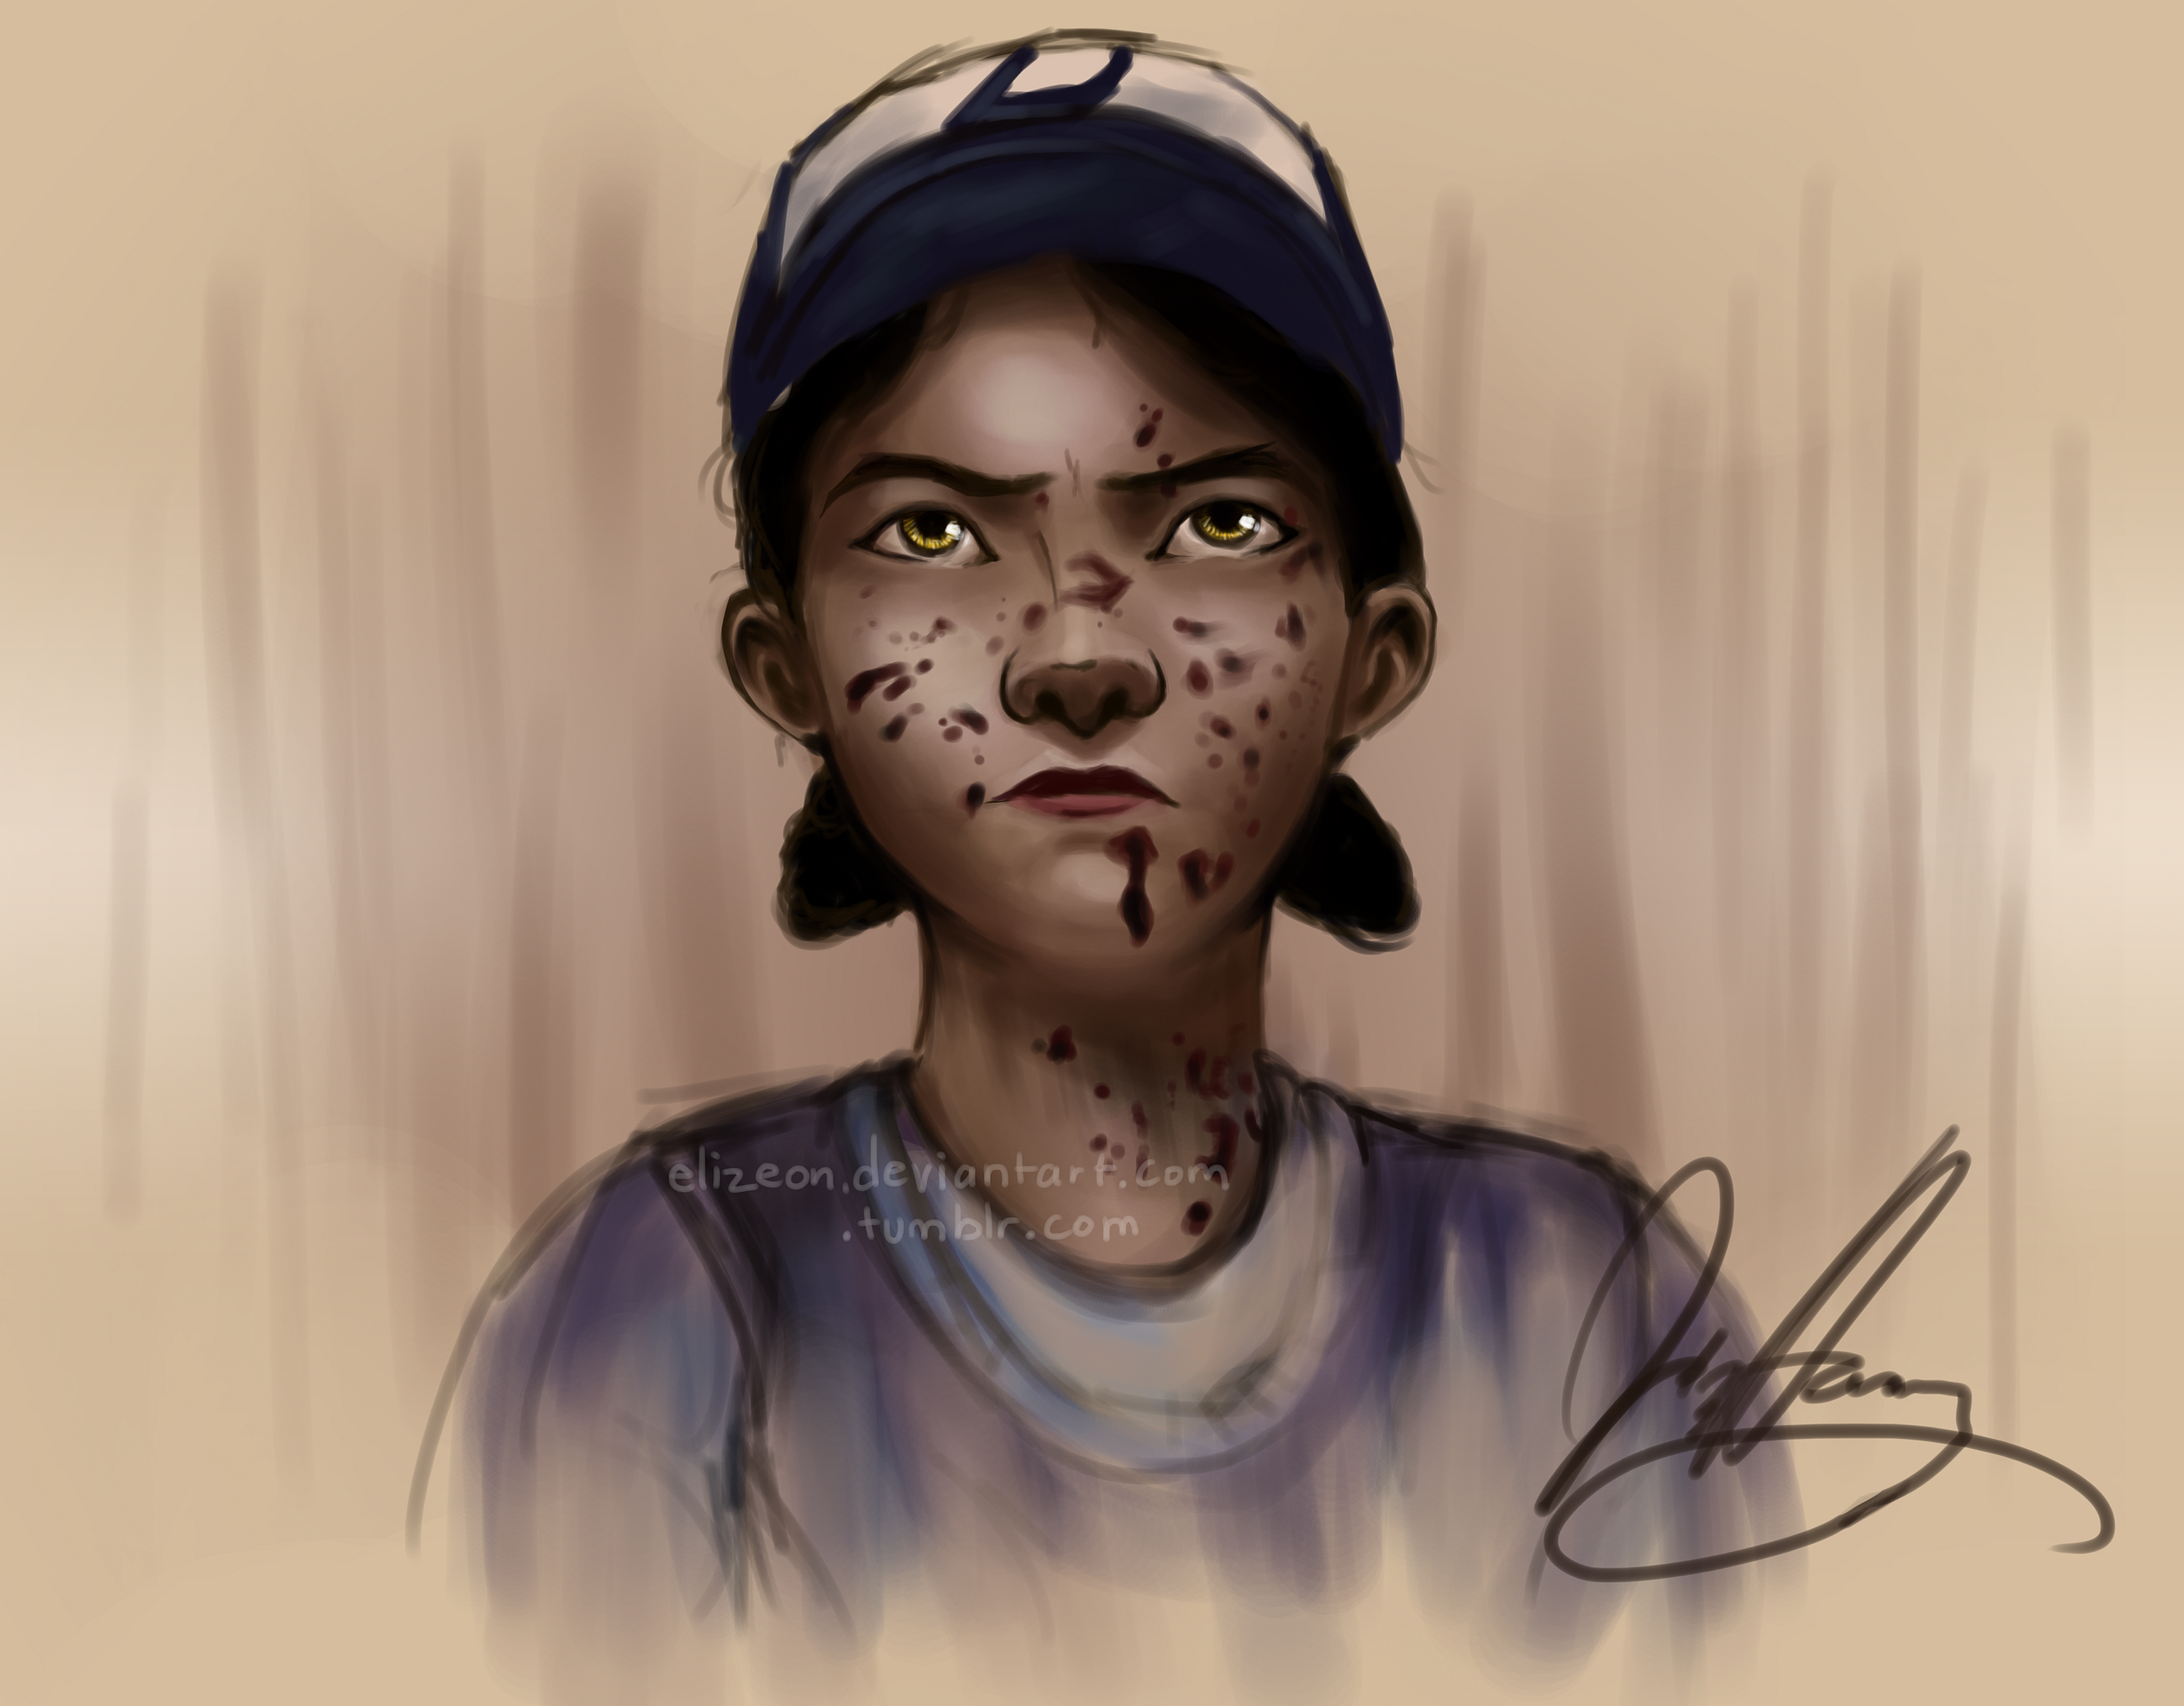 Kenny Twd Fan Art Together With Kenny Walking Dead